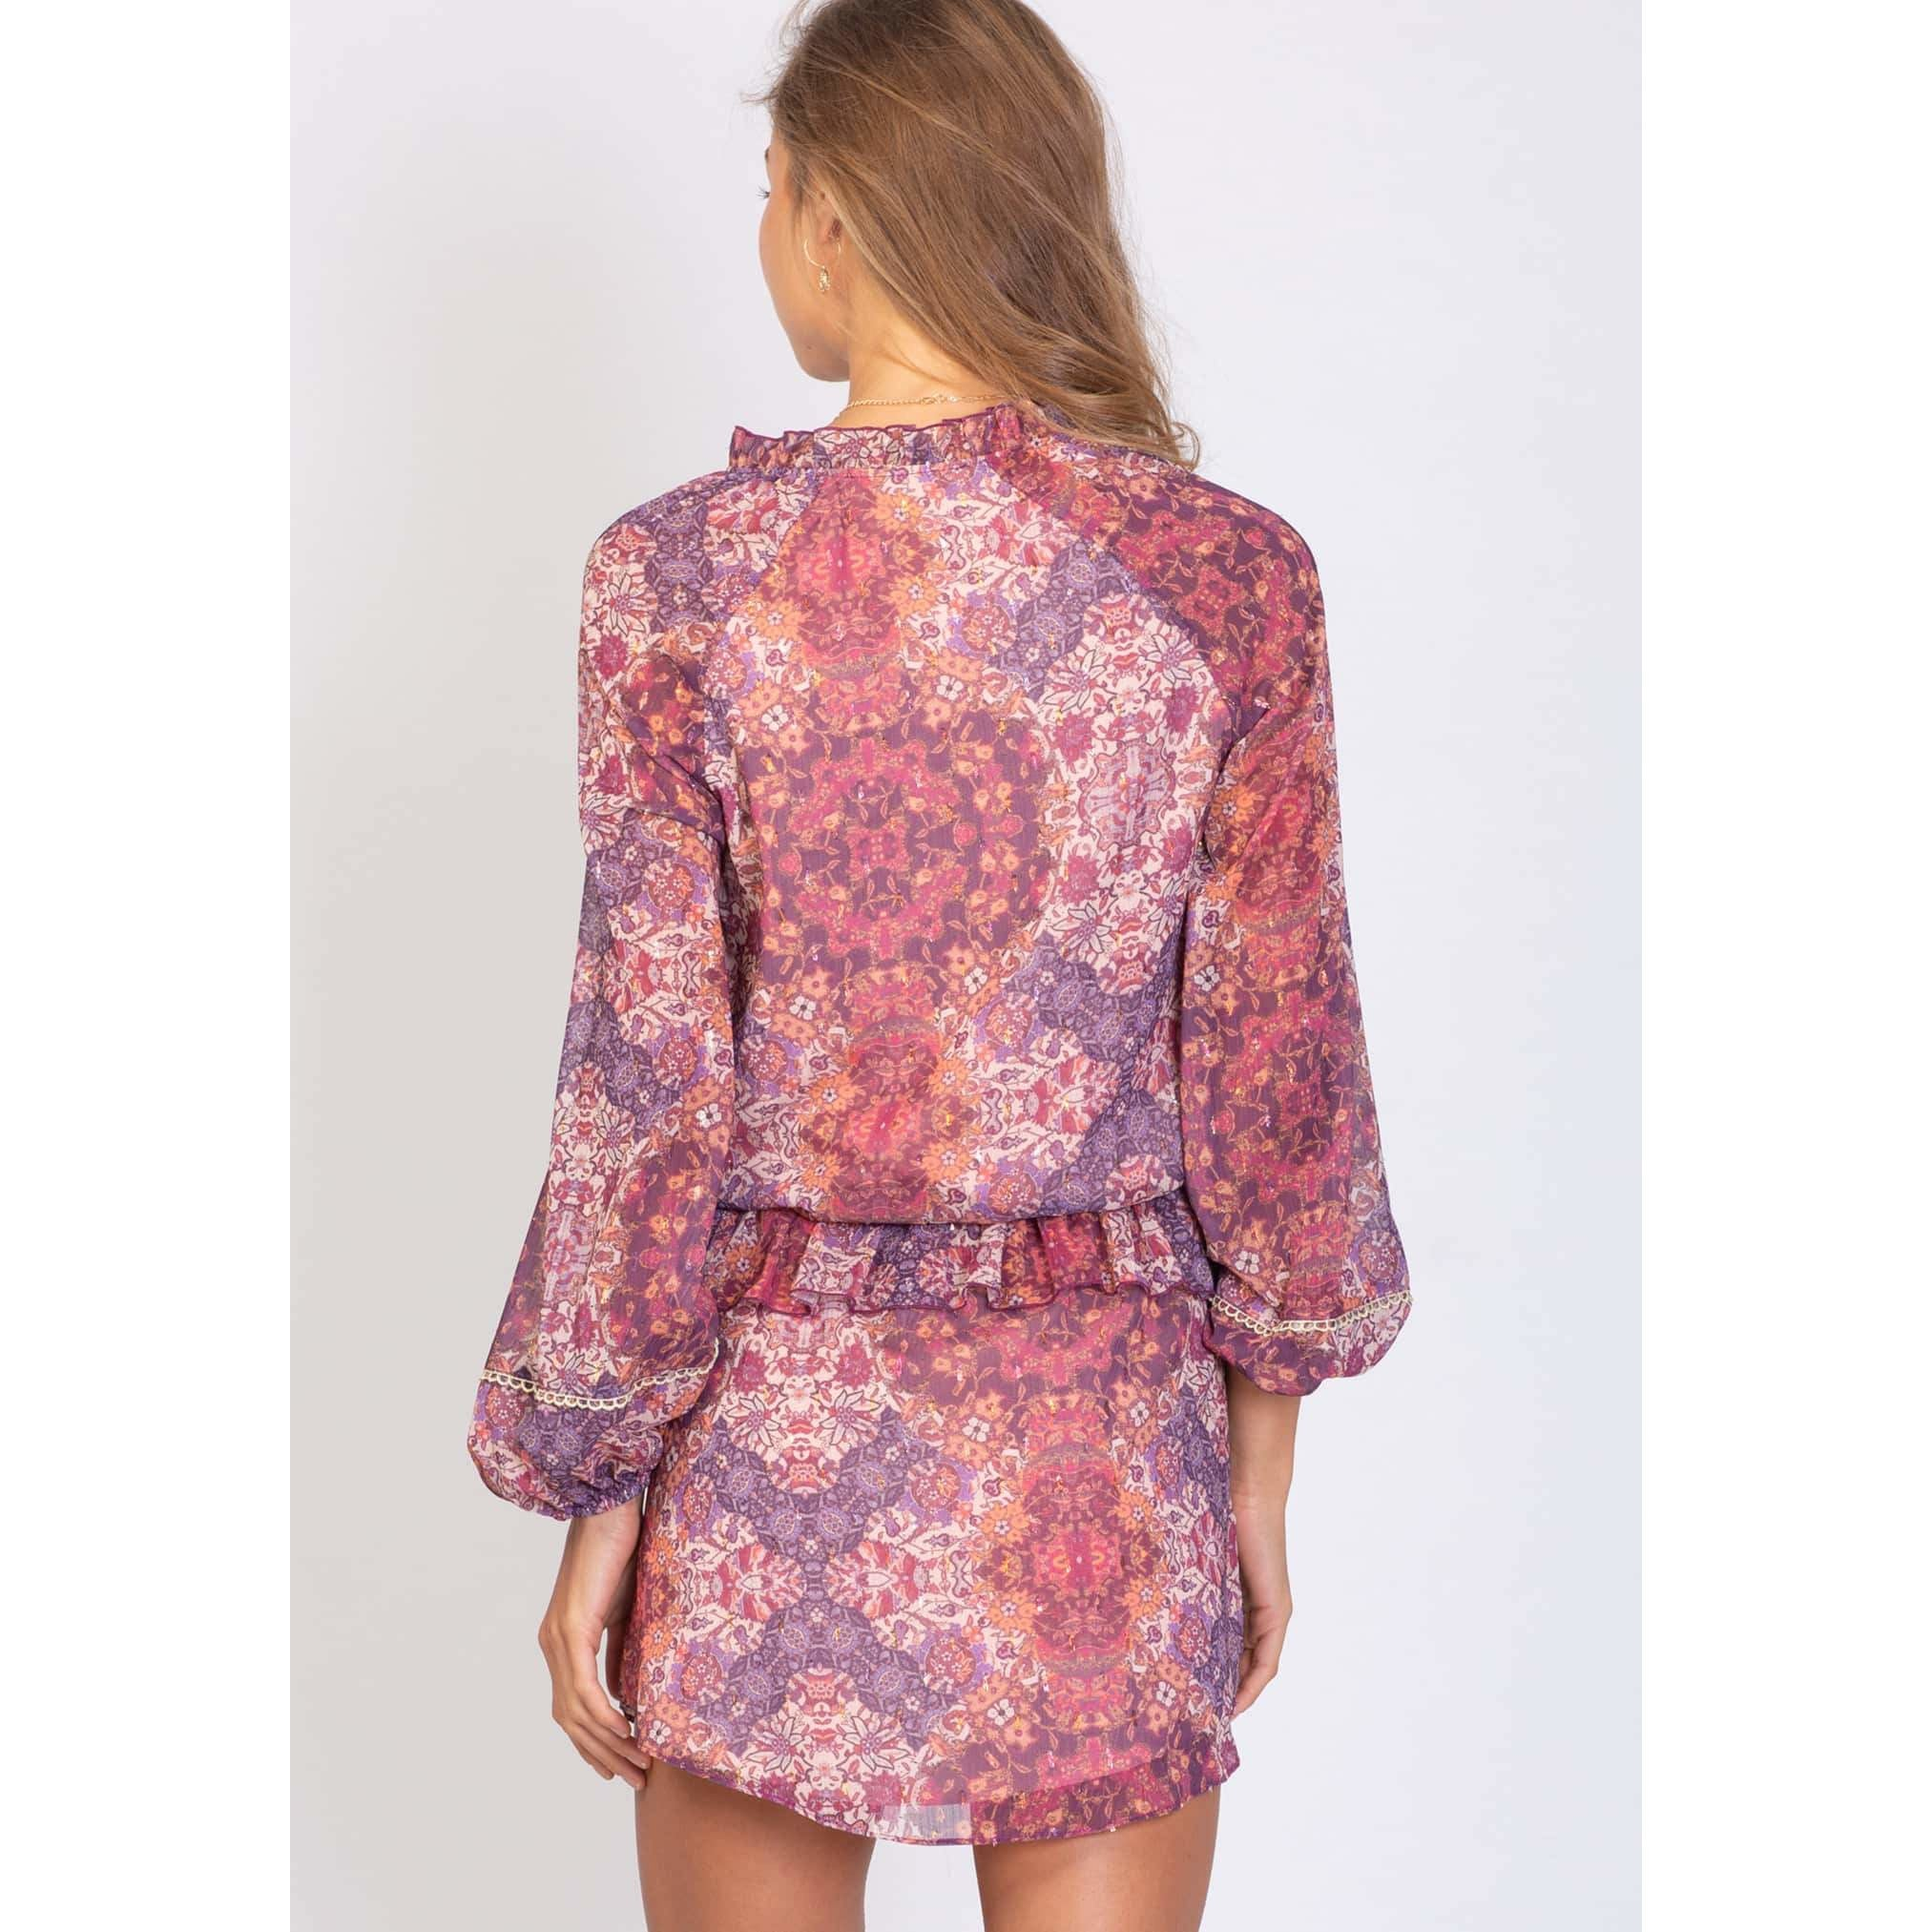 Jewel Baroque Scandal Dress - Jewel Baroque Print